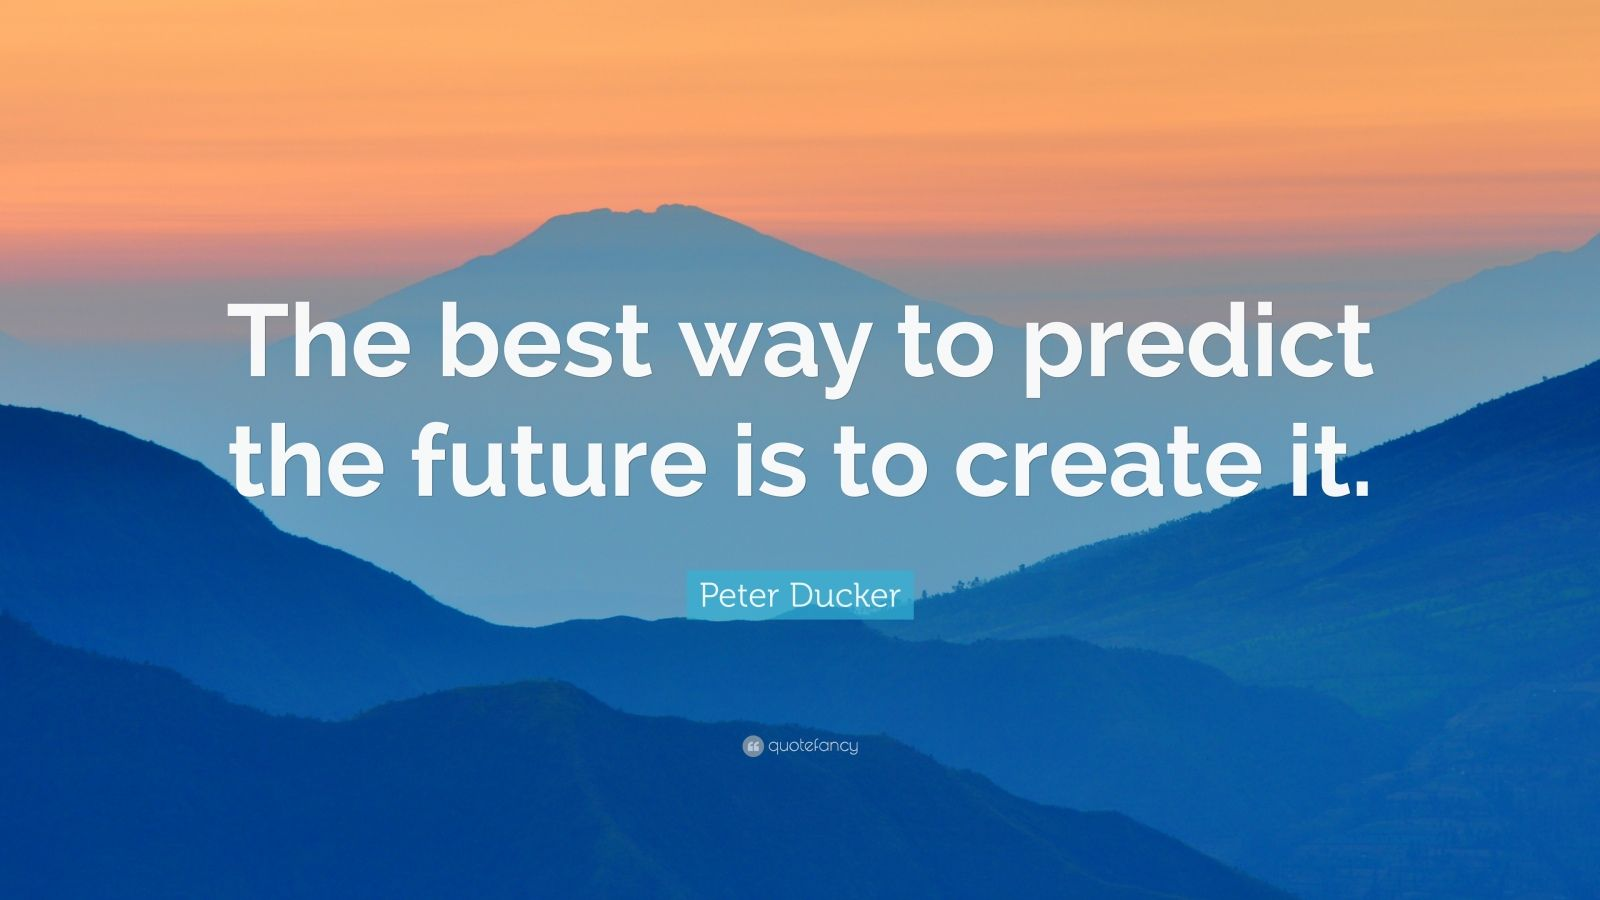 Gary Vaynerchuk Quotes Wallpaper Peter Ducker Quote The Best Way To Predict The Future Is